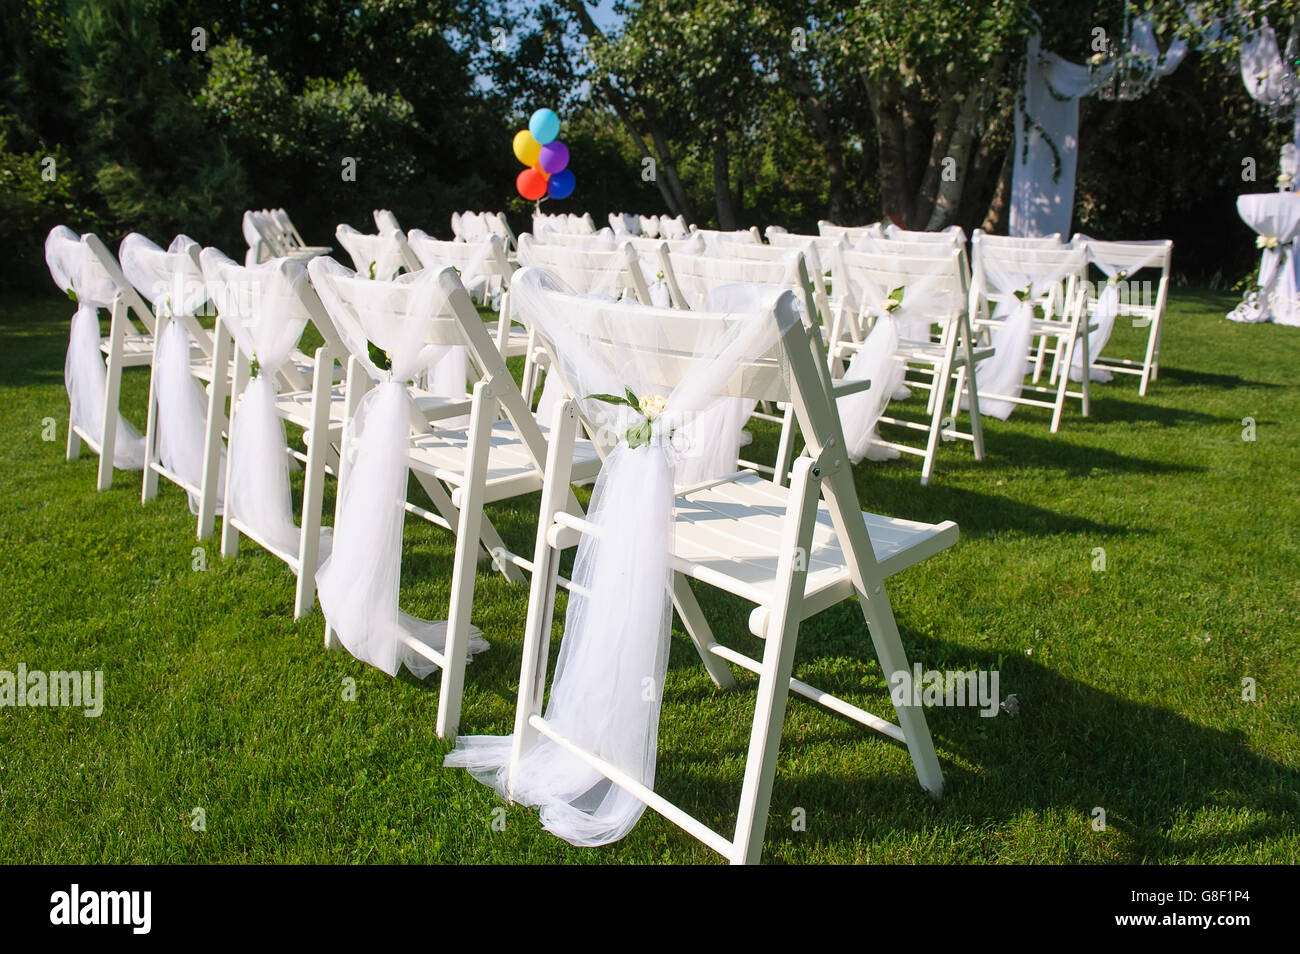 White Decorated Chairs On A Green Lawn Chairs Set In Rows For The Stock Photo Alamy